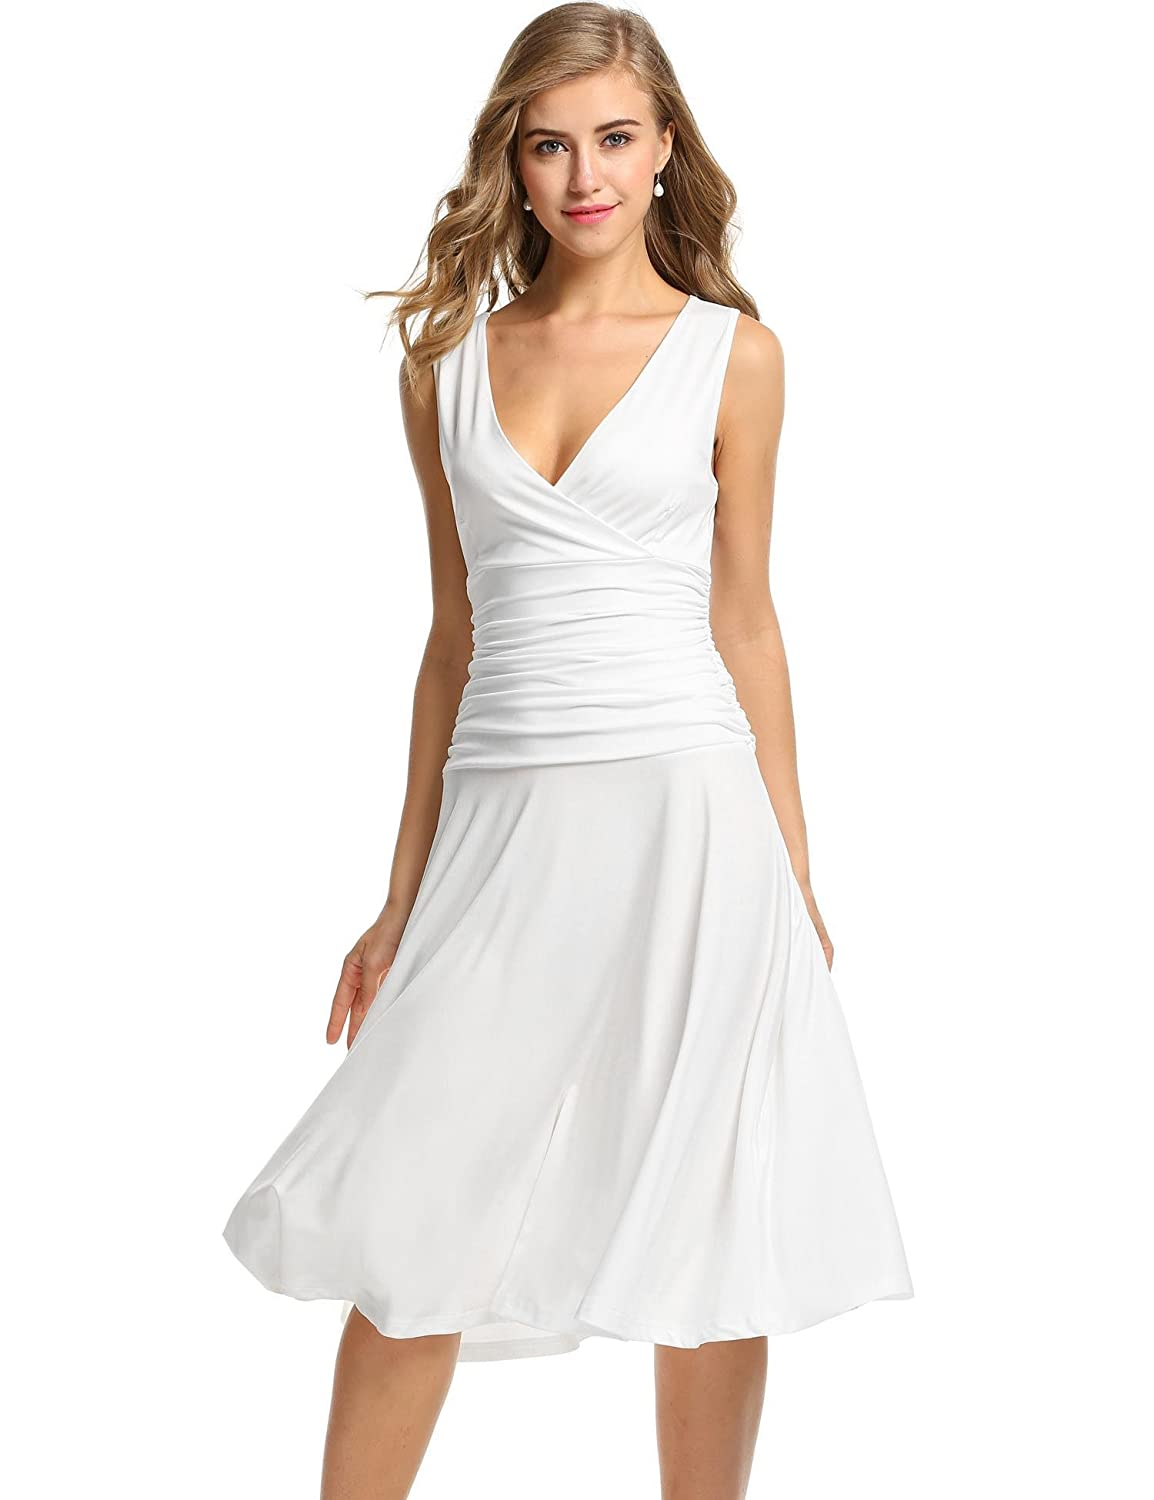 Meaneor Women's Sleeveless V Neck Crossover Ruched Waist Slimming Swing Dress MAH005034_W_S#